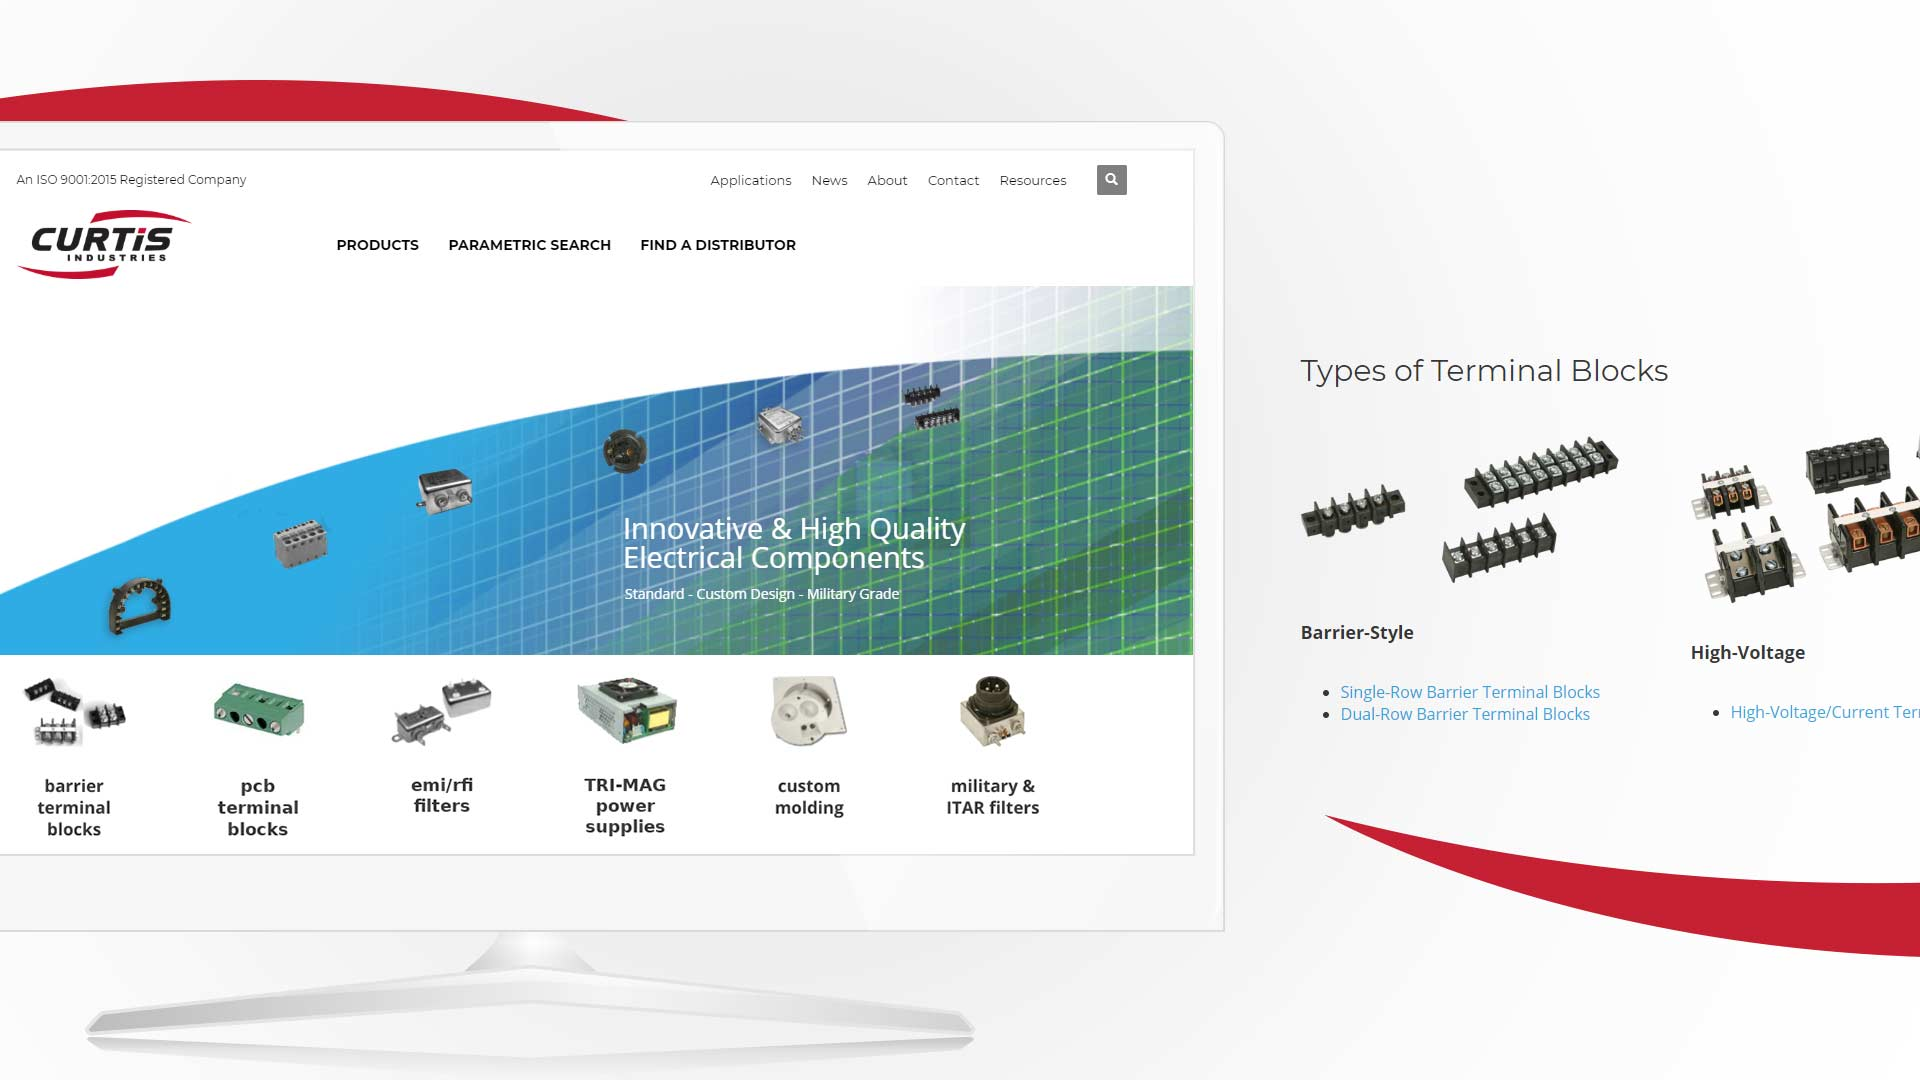 Milwaukee-based Curtis Industries partnered with NAVEO Marketing for industrial marketing strategy including a new website.